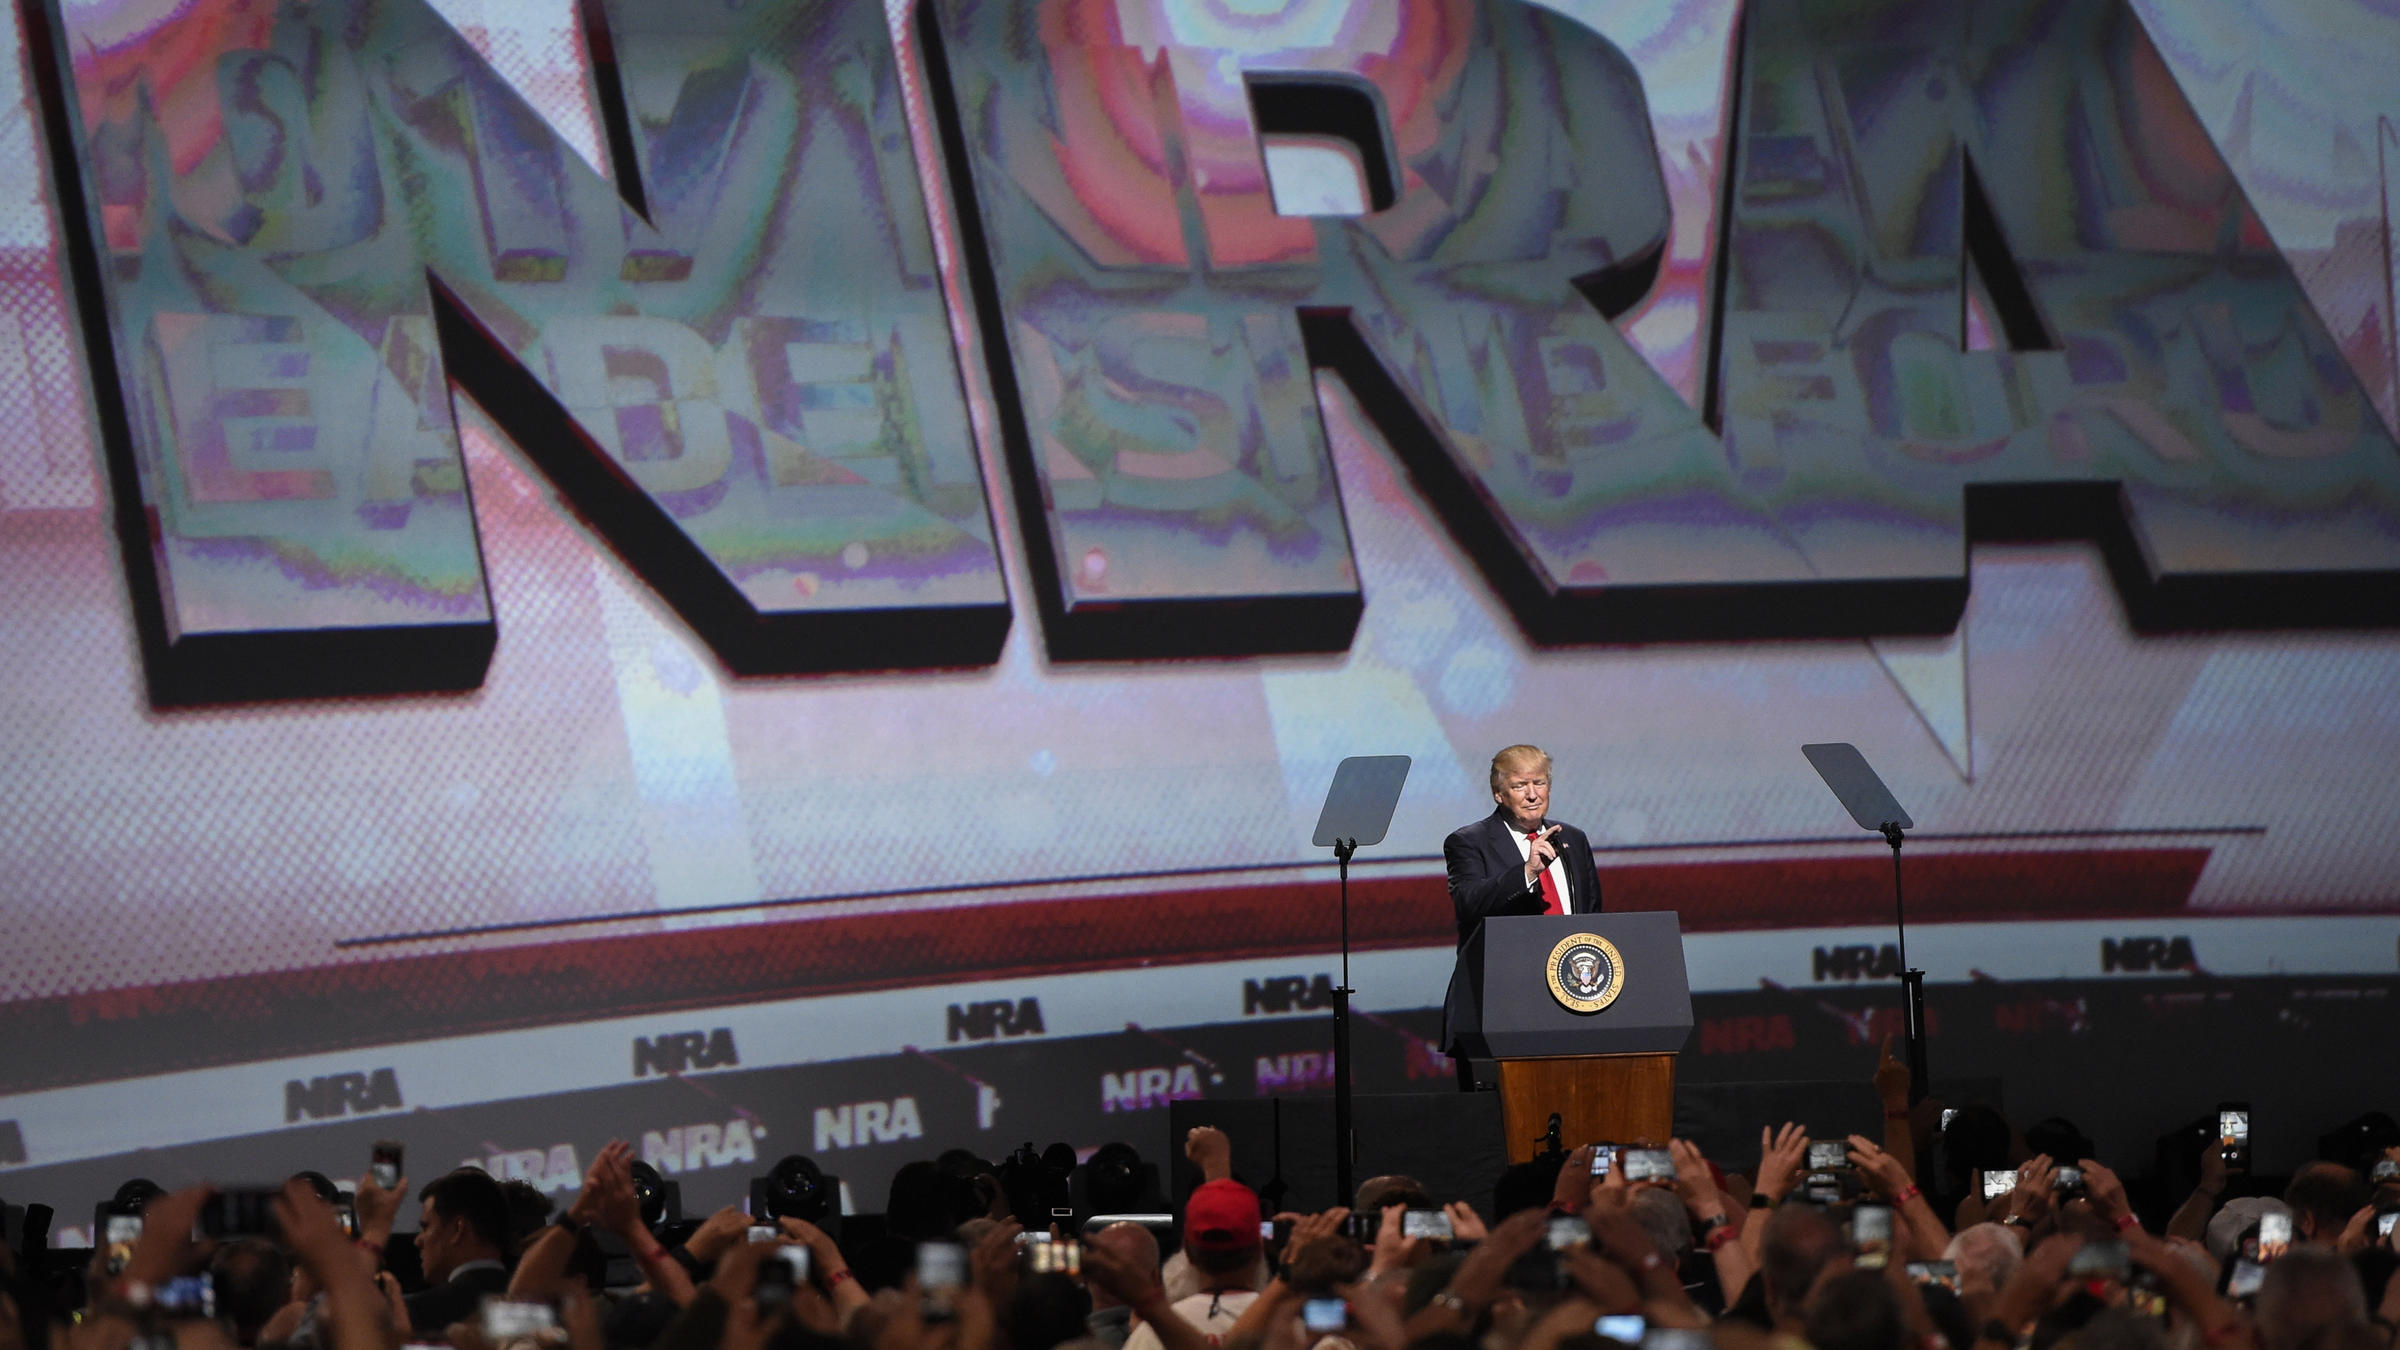 NRA Opens Convention In Dallas